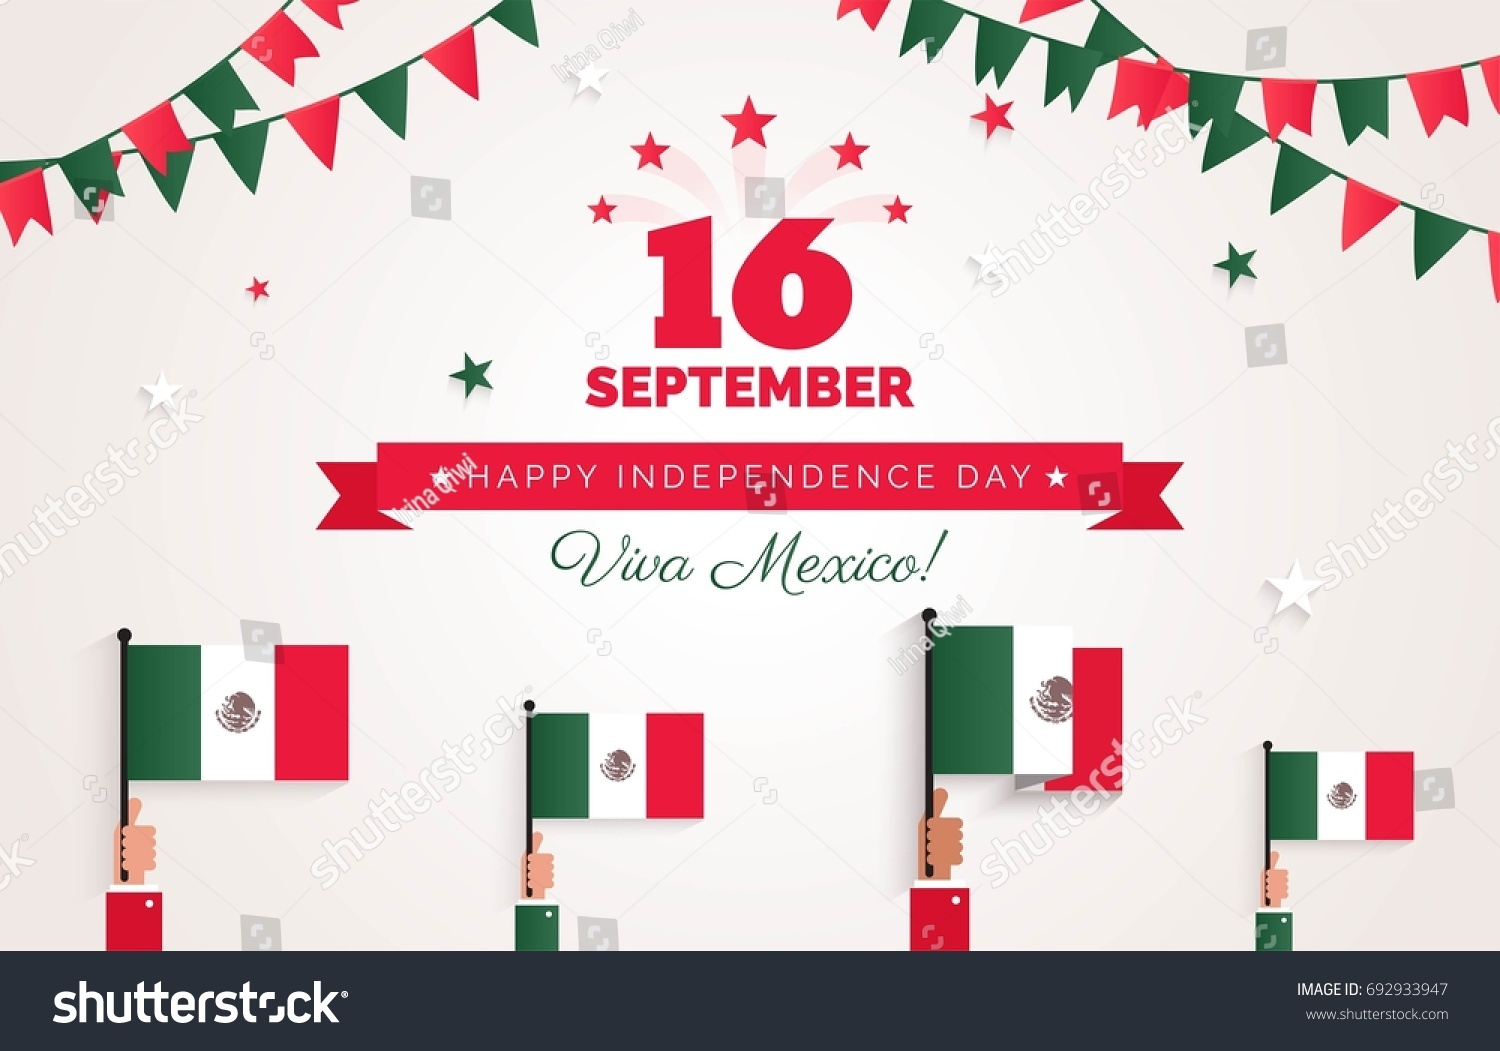 16 september mexico happy independence day stock vector royalty mexico happy independence day greeting card celebration background with bunting flags m4hsunfo